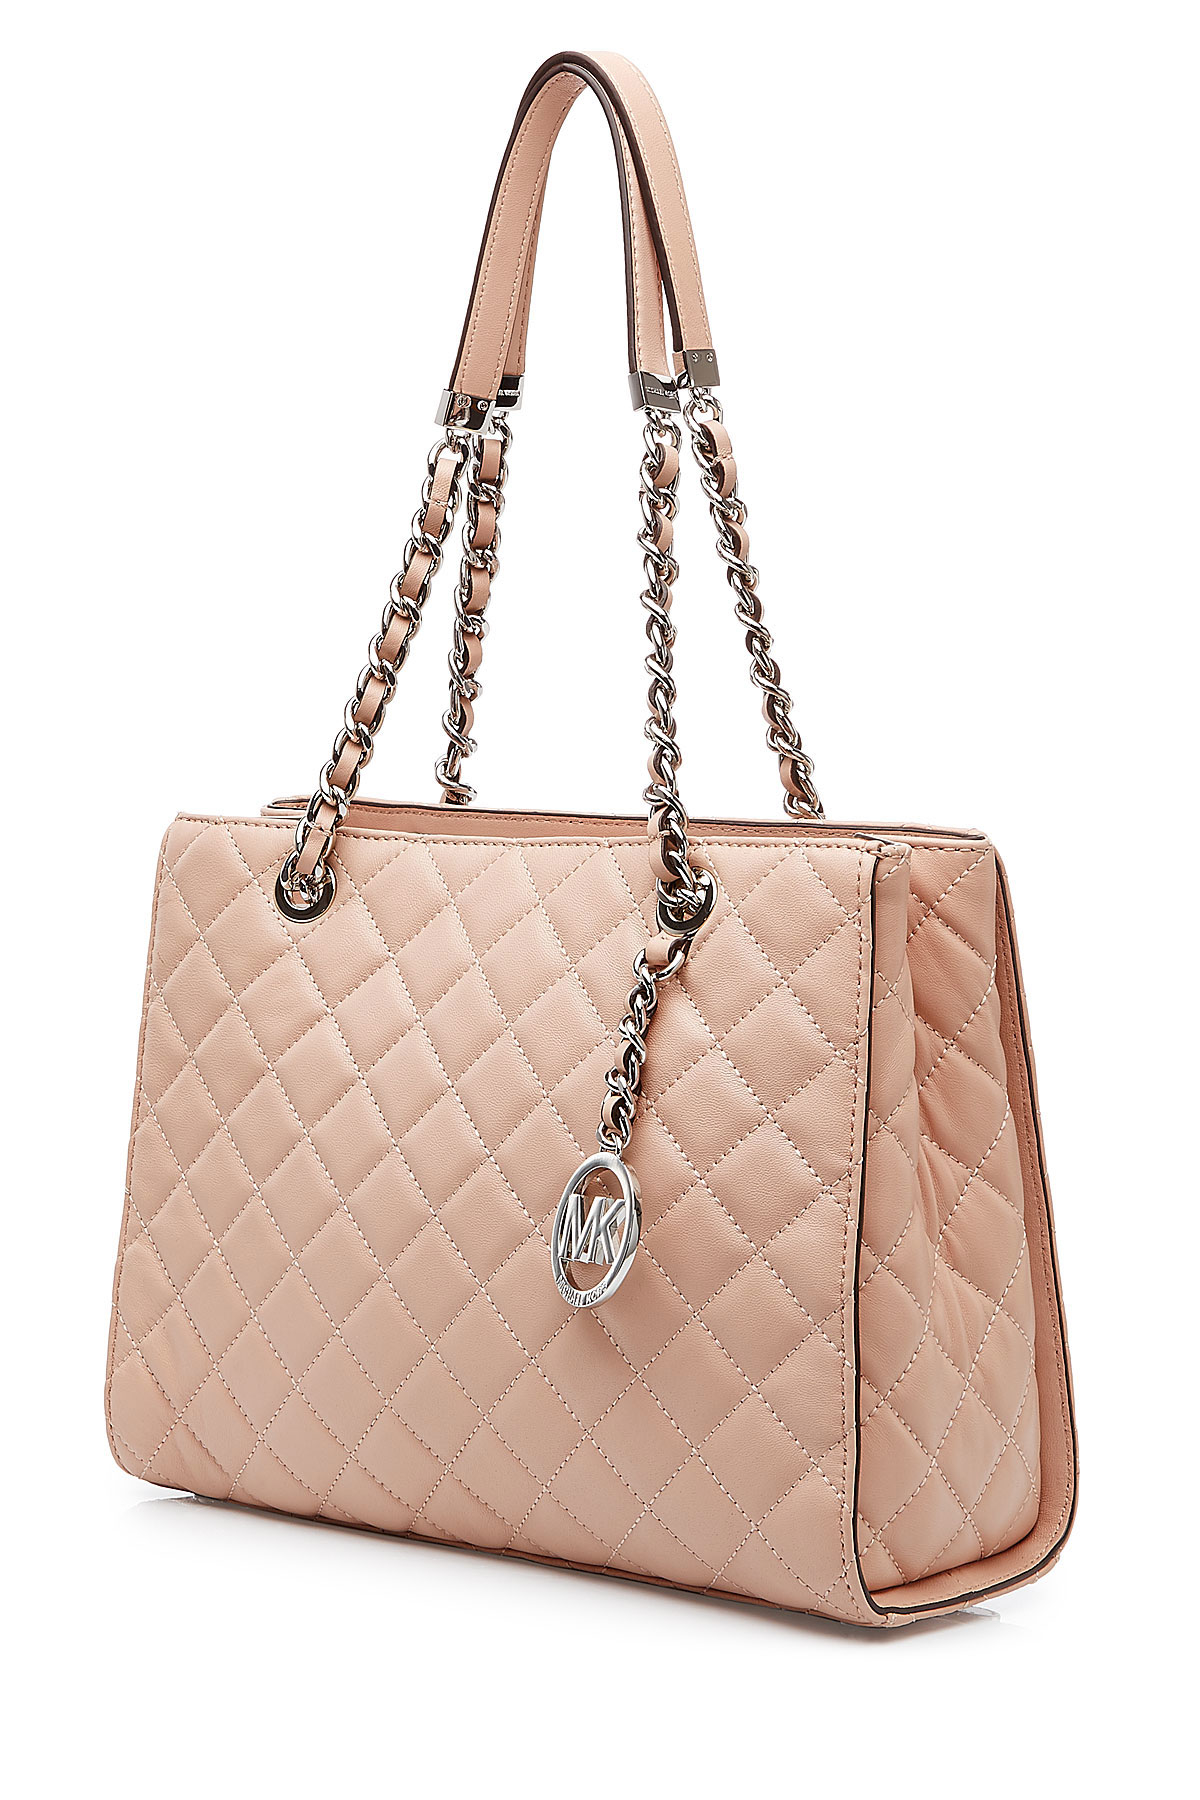 9c95312122 Gallery. Previously sold at  STYLEBOP.com · Women s Michael By Michael Kors  Susannah ...